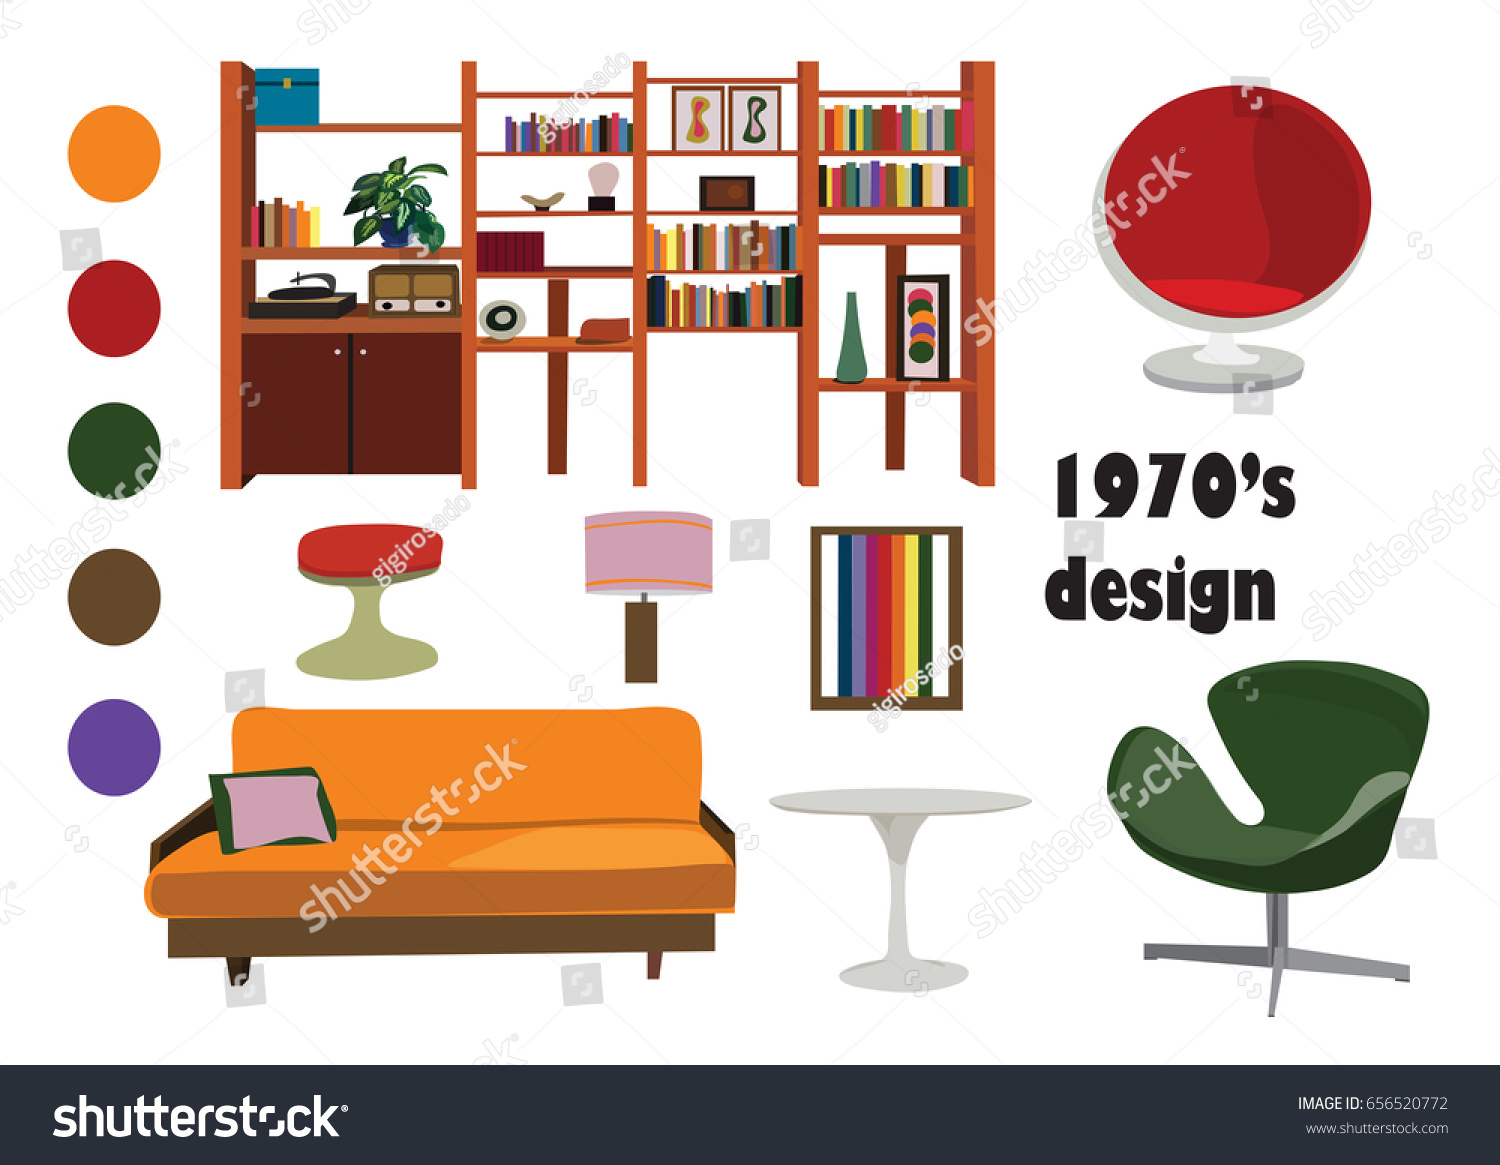 1970s 70s interior design vector elements stock vector for Interior design images vector